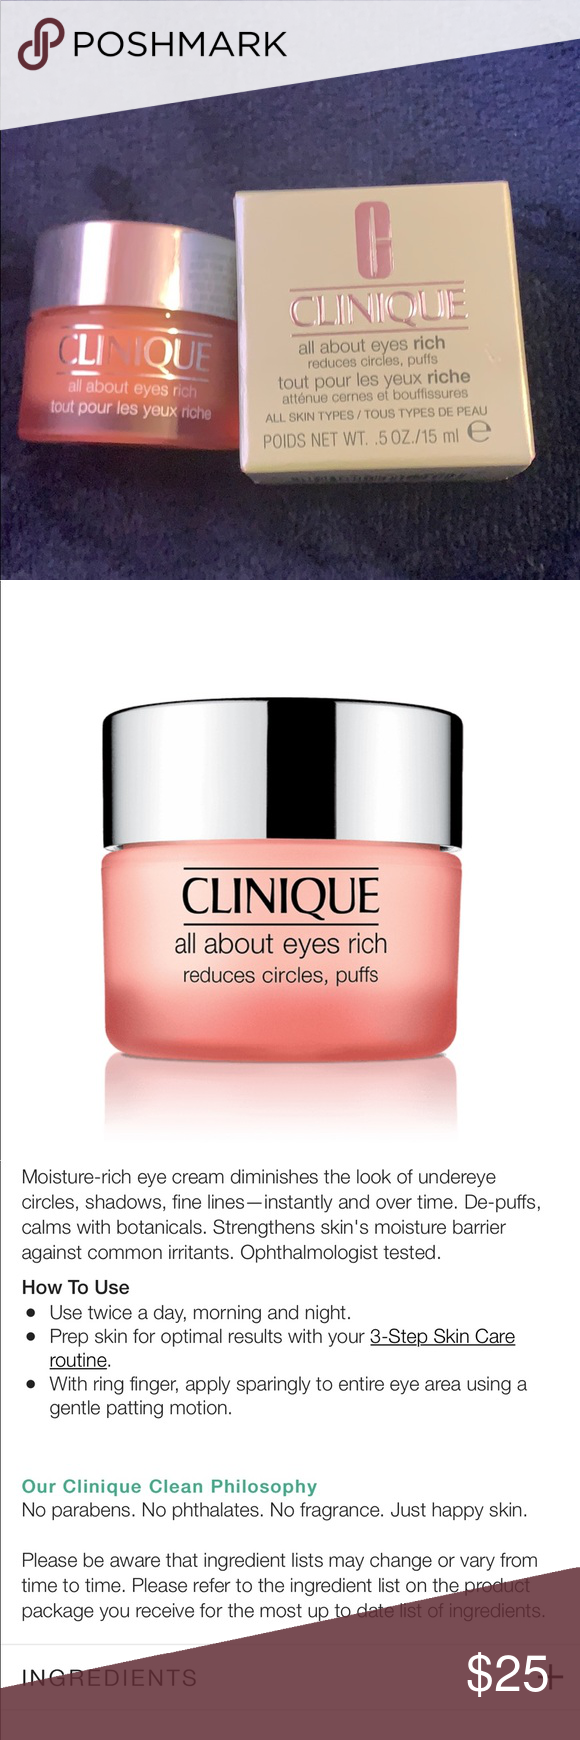 Clinique All About Eyes Rich Clinique Eye Cream Clinique All About Eyes